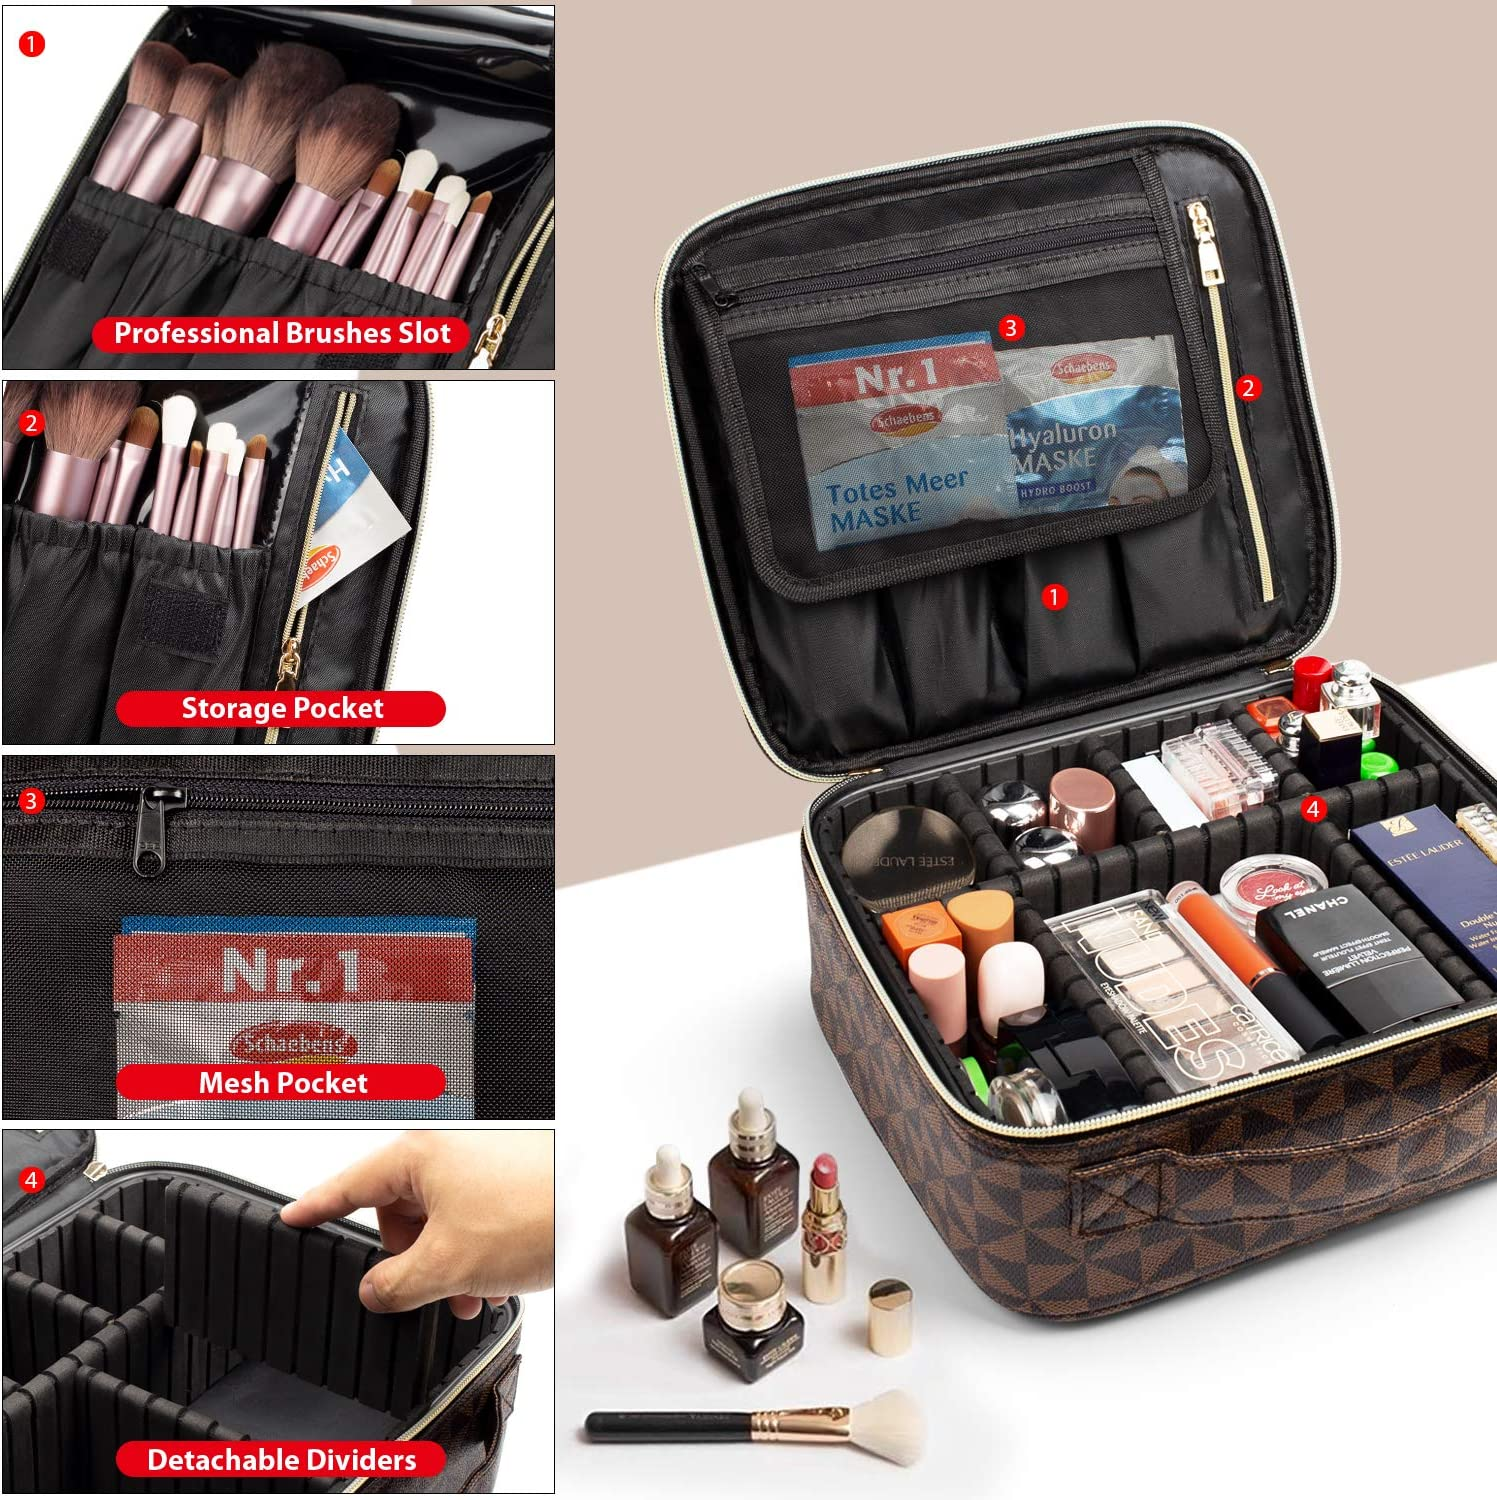 Makeup Bag,WDLHQC Upgraded Travel Makeup Organizers & Storage Case,Portable Make up Bag Cosmetic Train,Gift for Her,Women,Girl